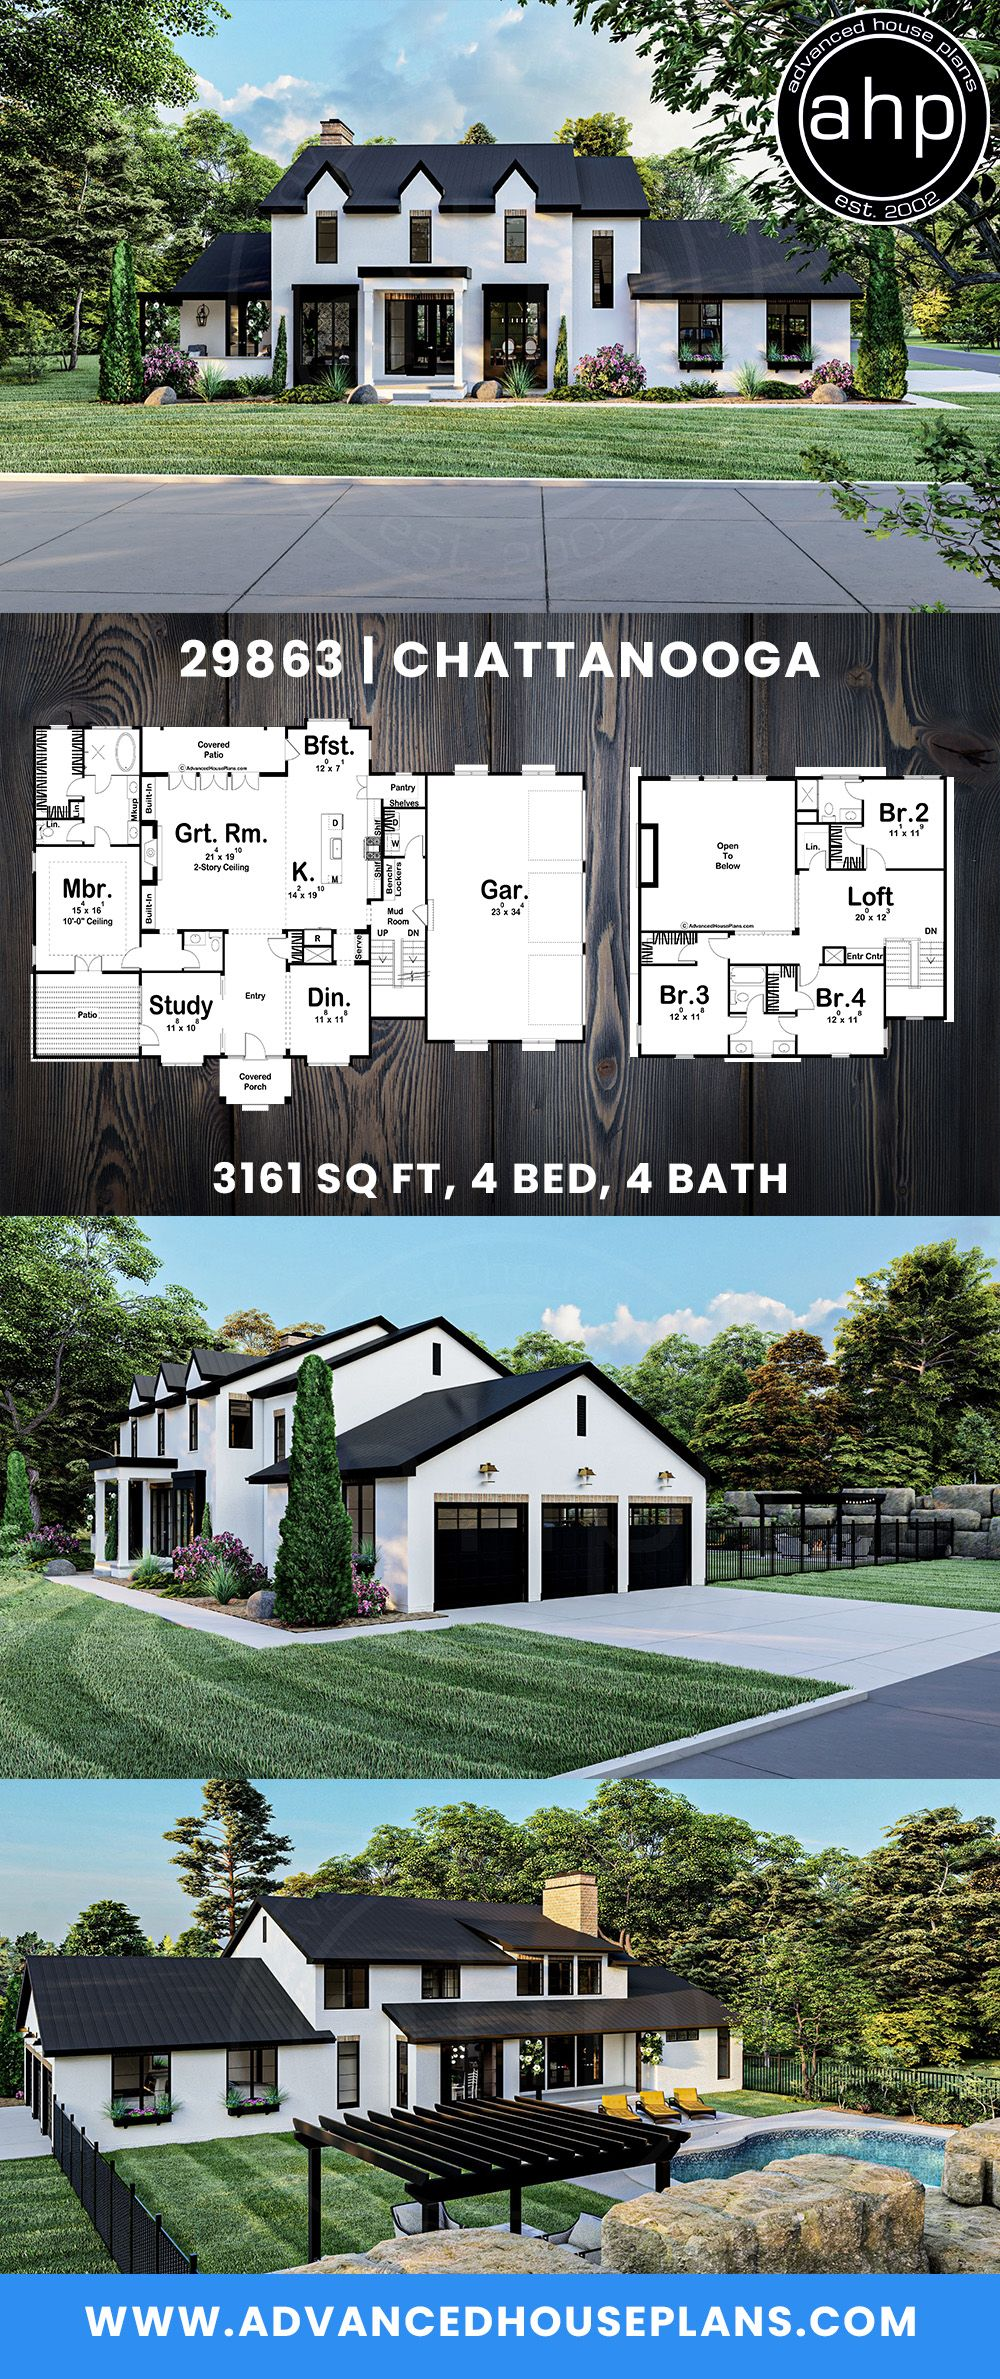 1 5 Story Southern Style House Plan Chattanooga In 2020 Farmhouse Style House Plans House Blueprints Dream House Exterior